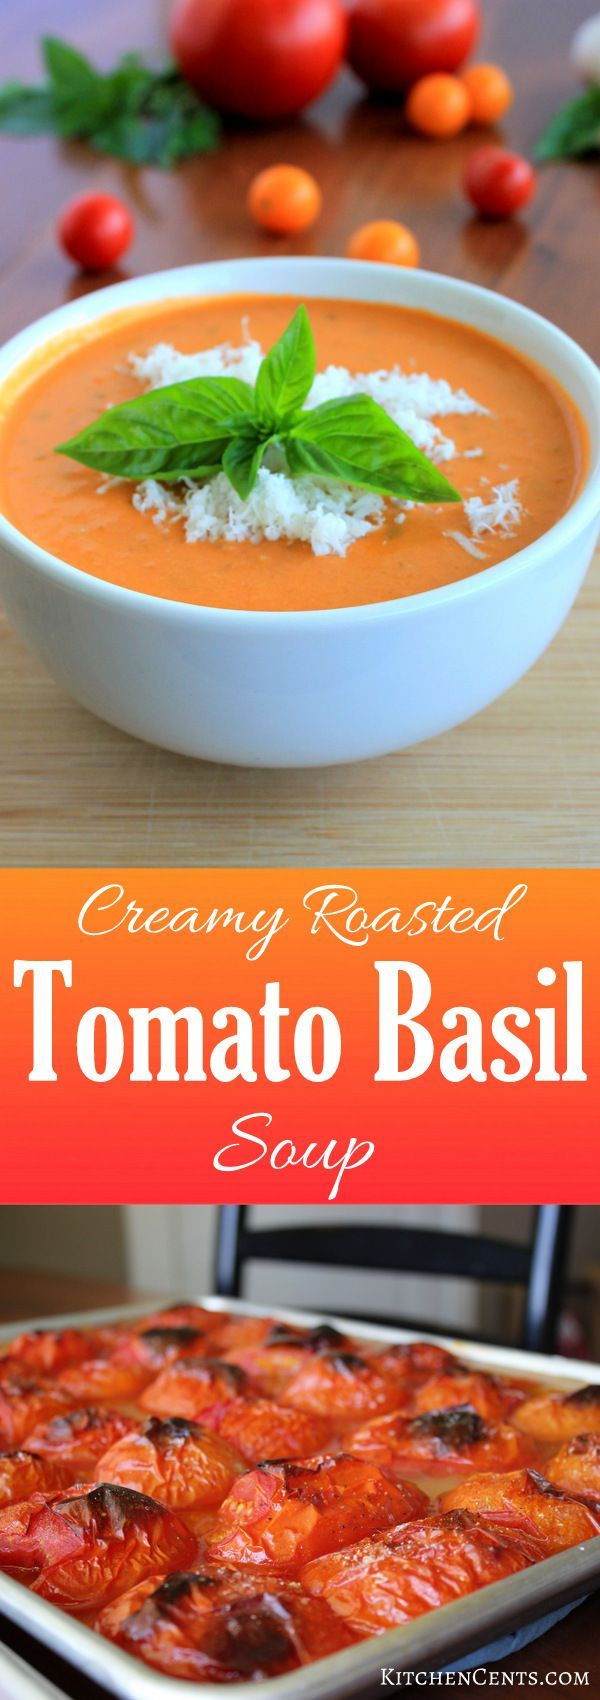 Creamy Roasted Tomato Basil Soup | KitchenCents.com This Creamy Roasted Tomato Basil Soup is delicious with its creamy, herb-filled tomato soup full of roasted fresh tomatoes.